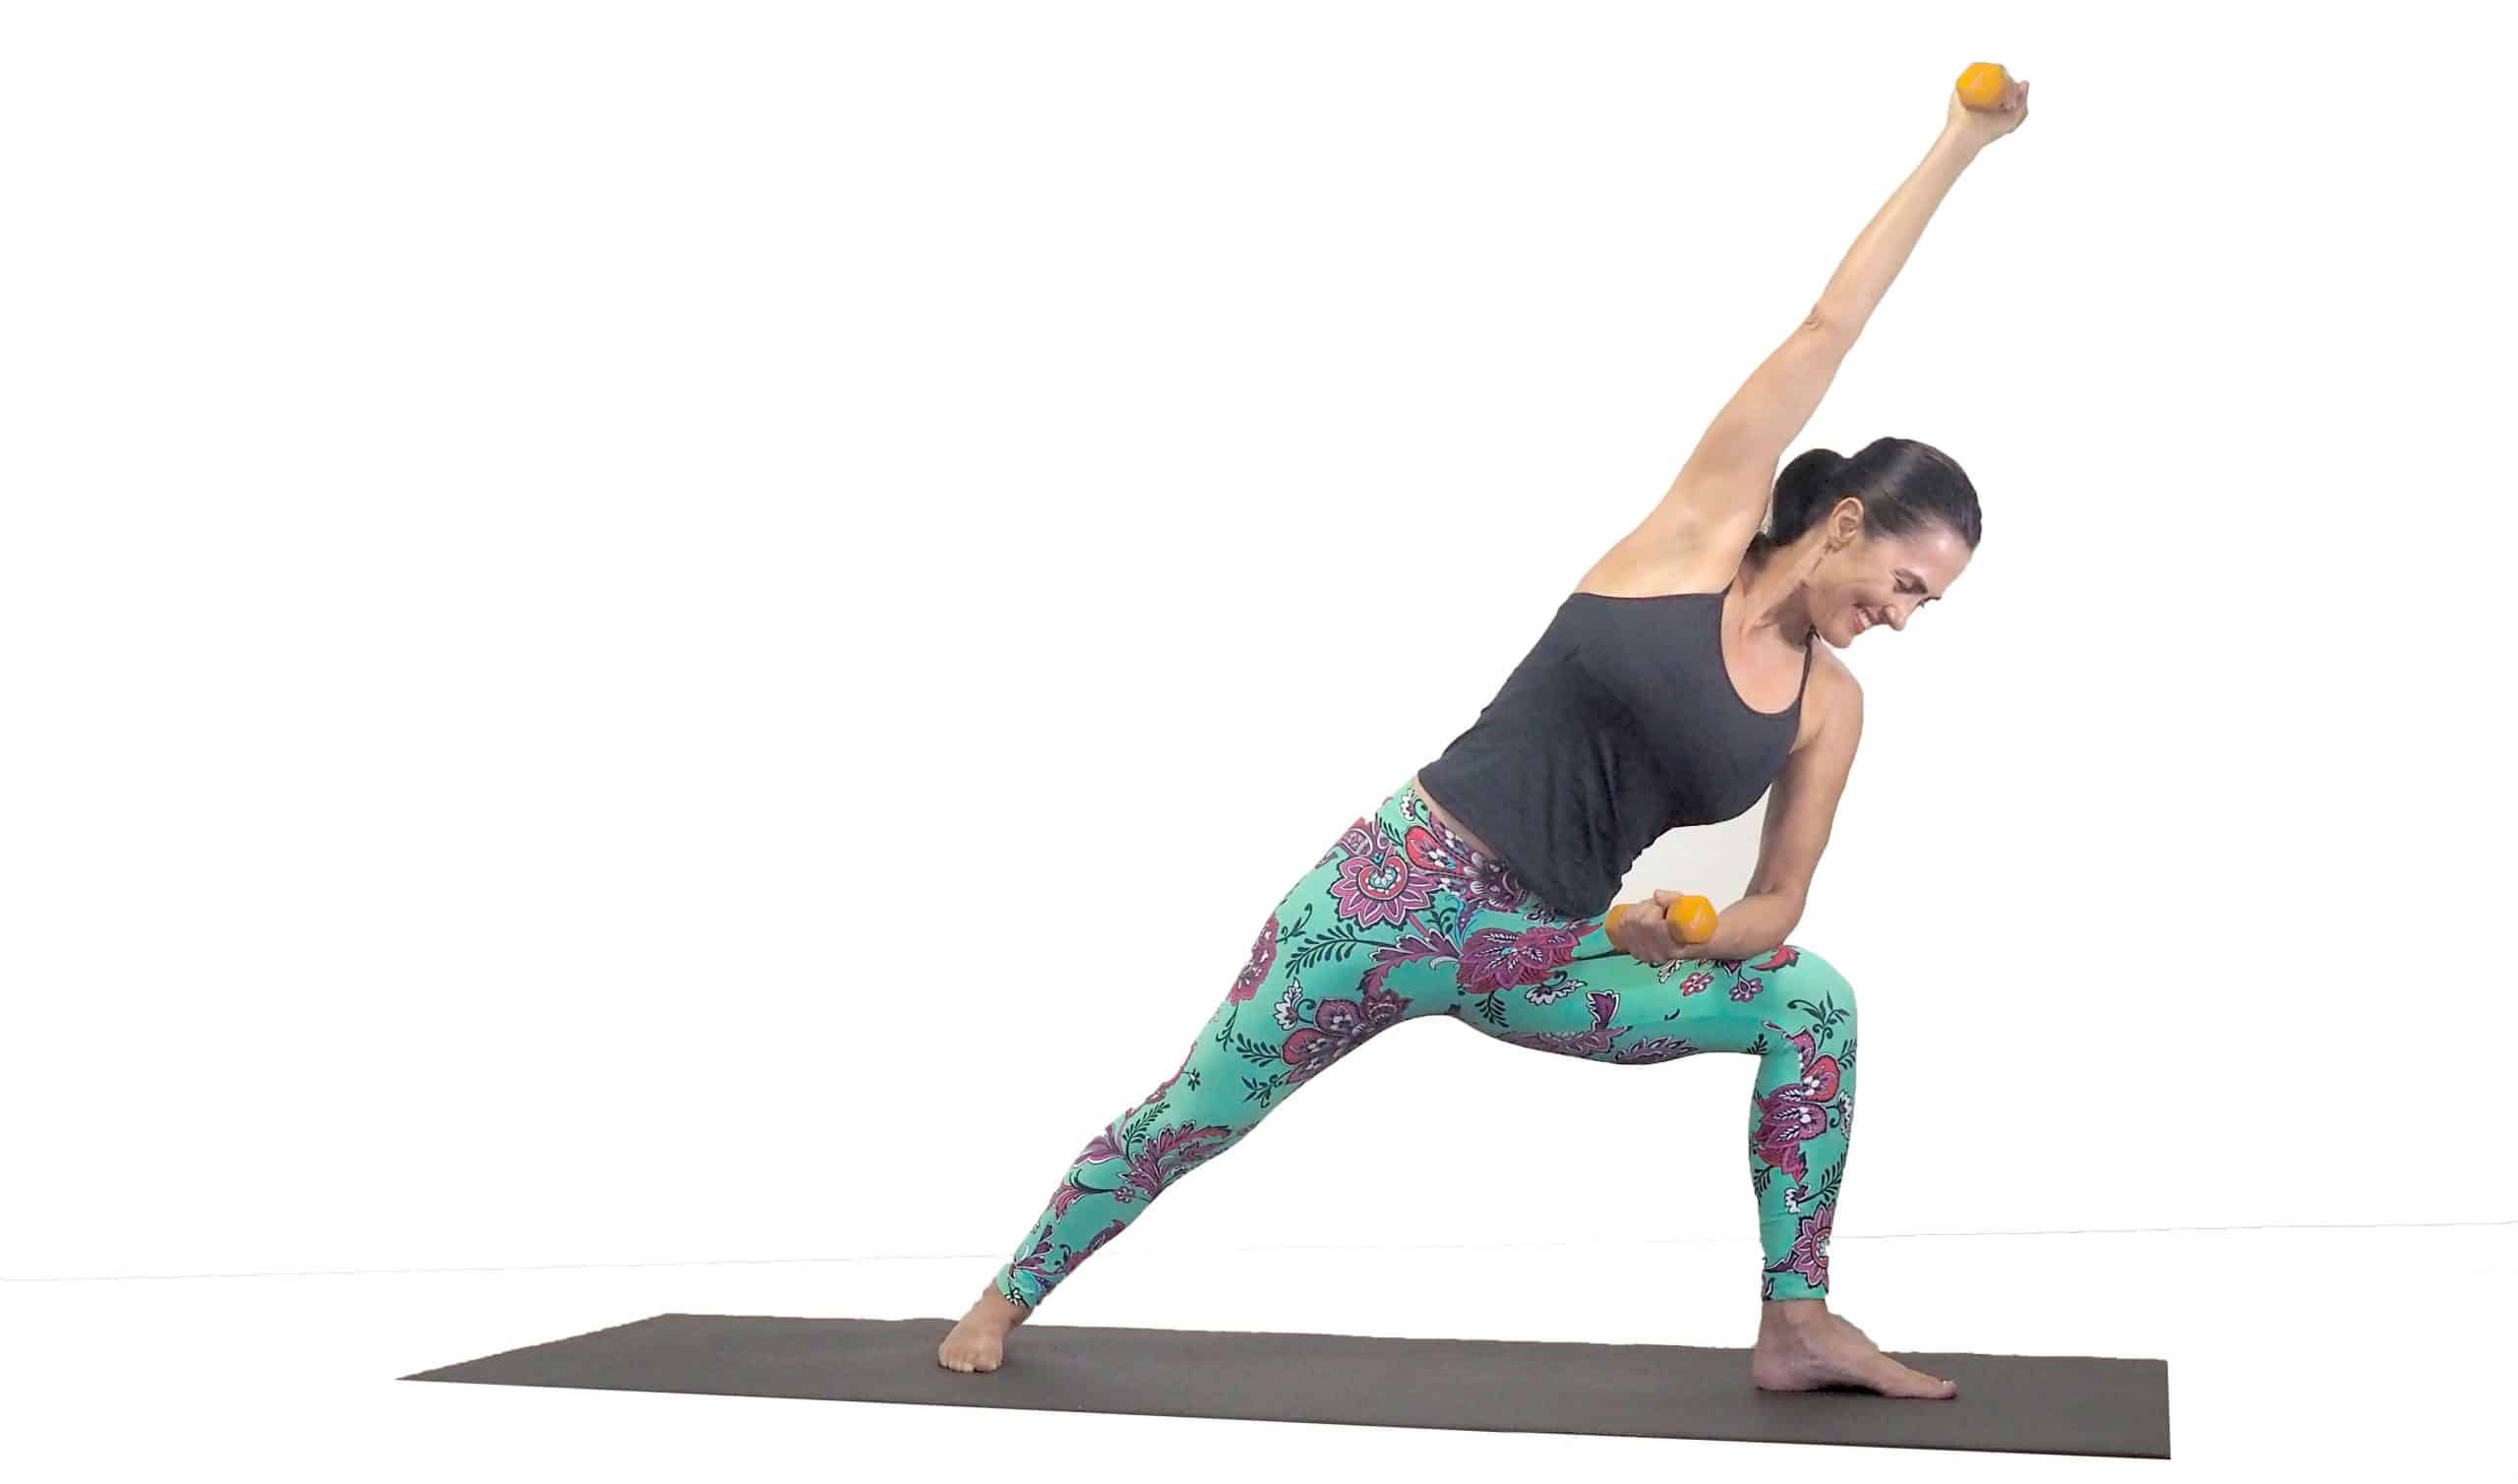 Yoga with weights - side angle pose using dumbbells